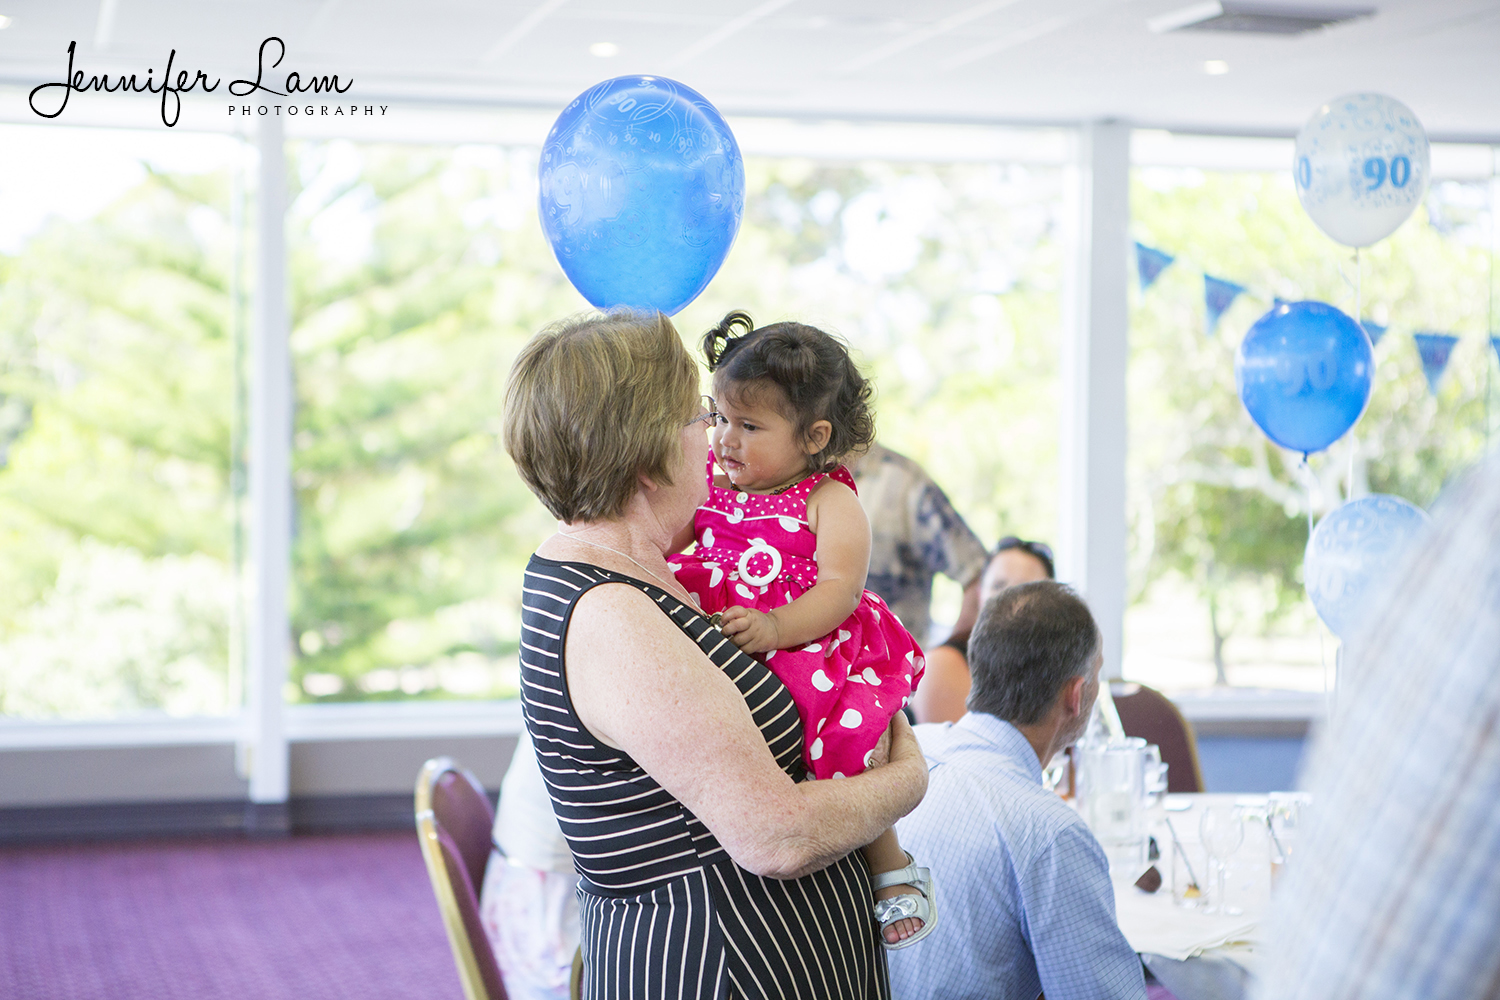 Jim's 90th Birthday - Event Photography - Jennifer Lam Photography (72).jpg